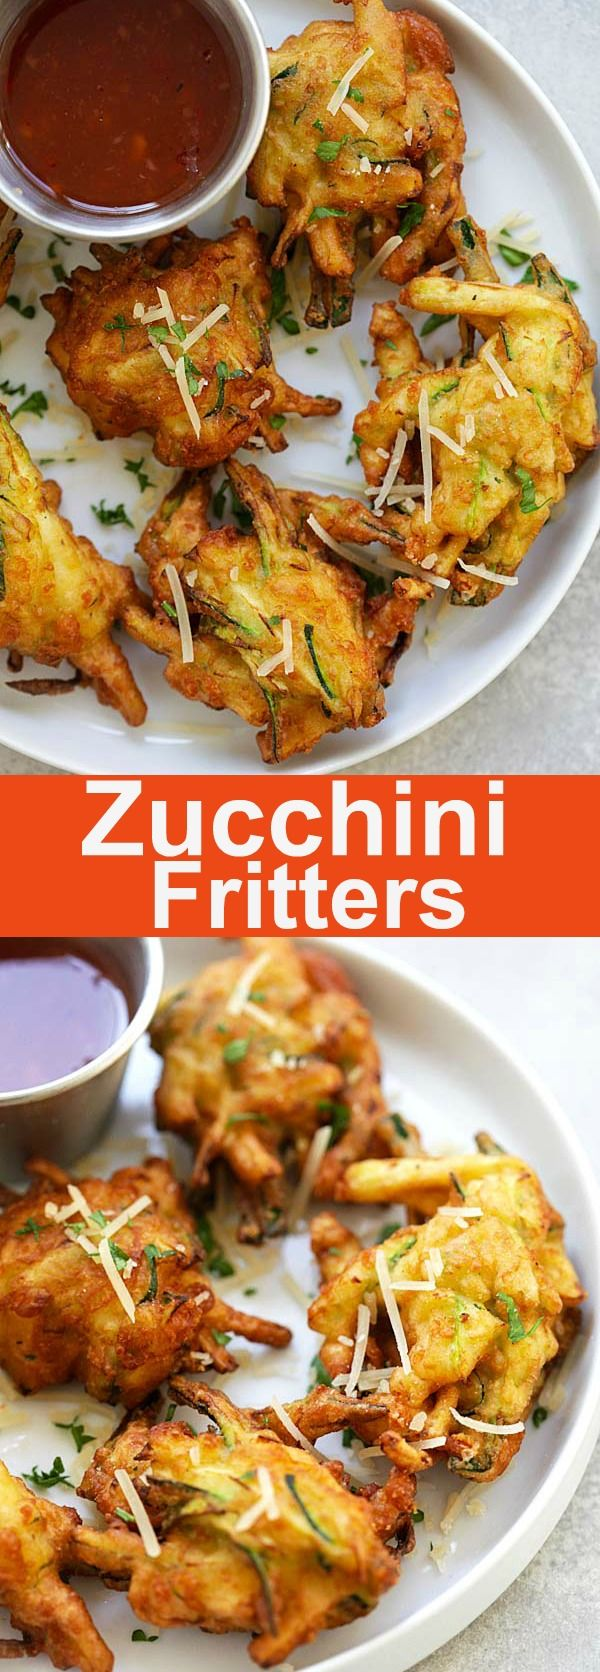 Zucchini Fritters - the easiest and most delicious zucchini fritters recipe you'll find online. Crispy and loaded with zucchini, so good   rasamalaysia.com